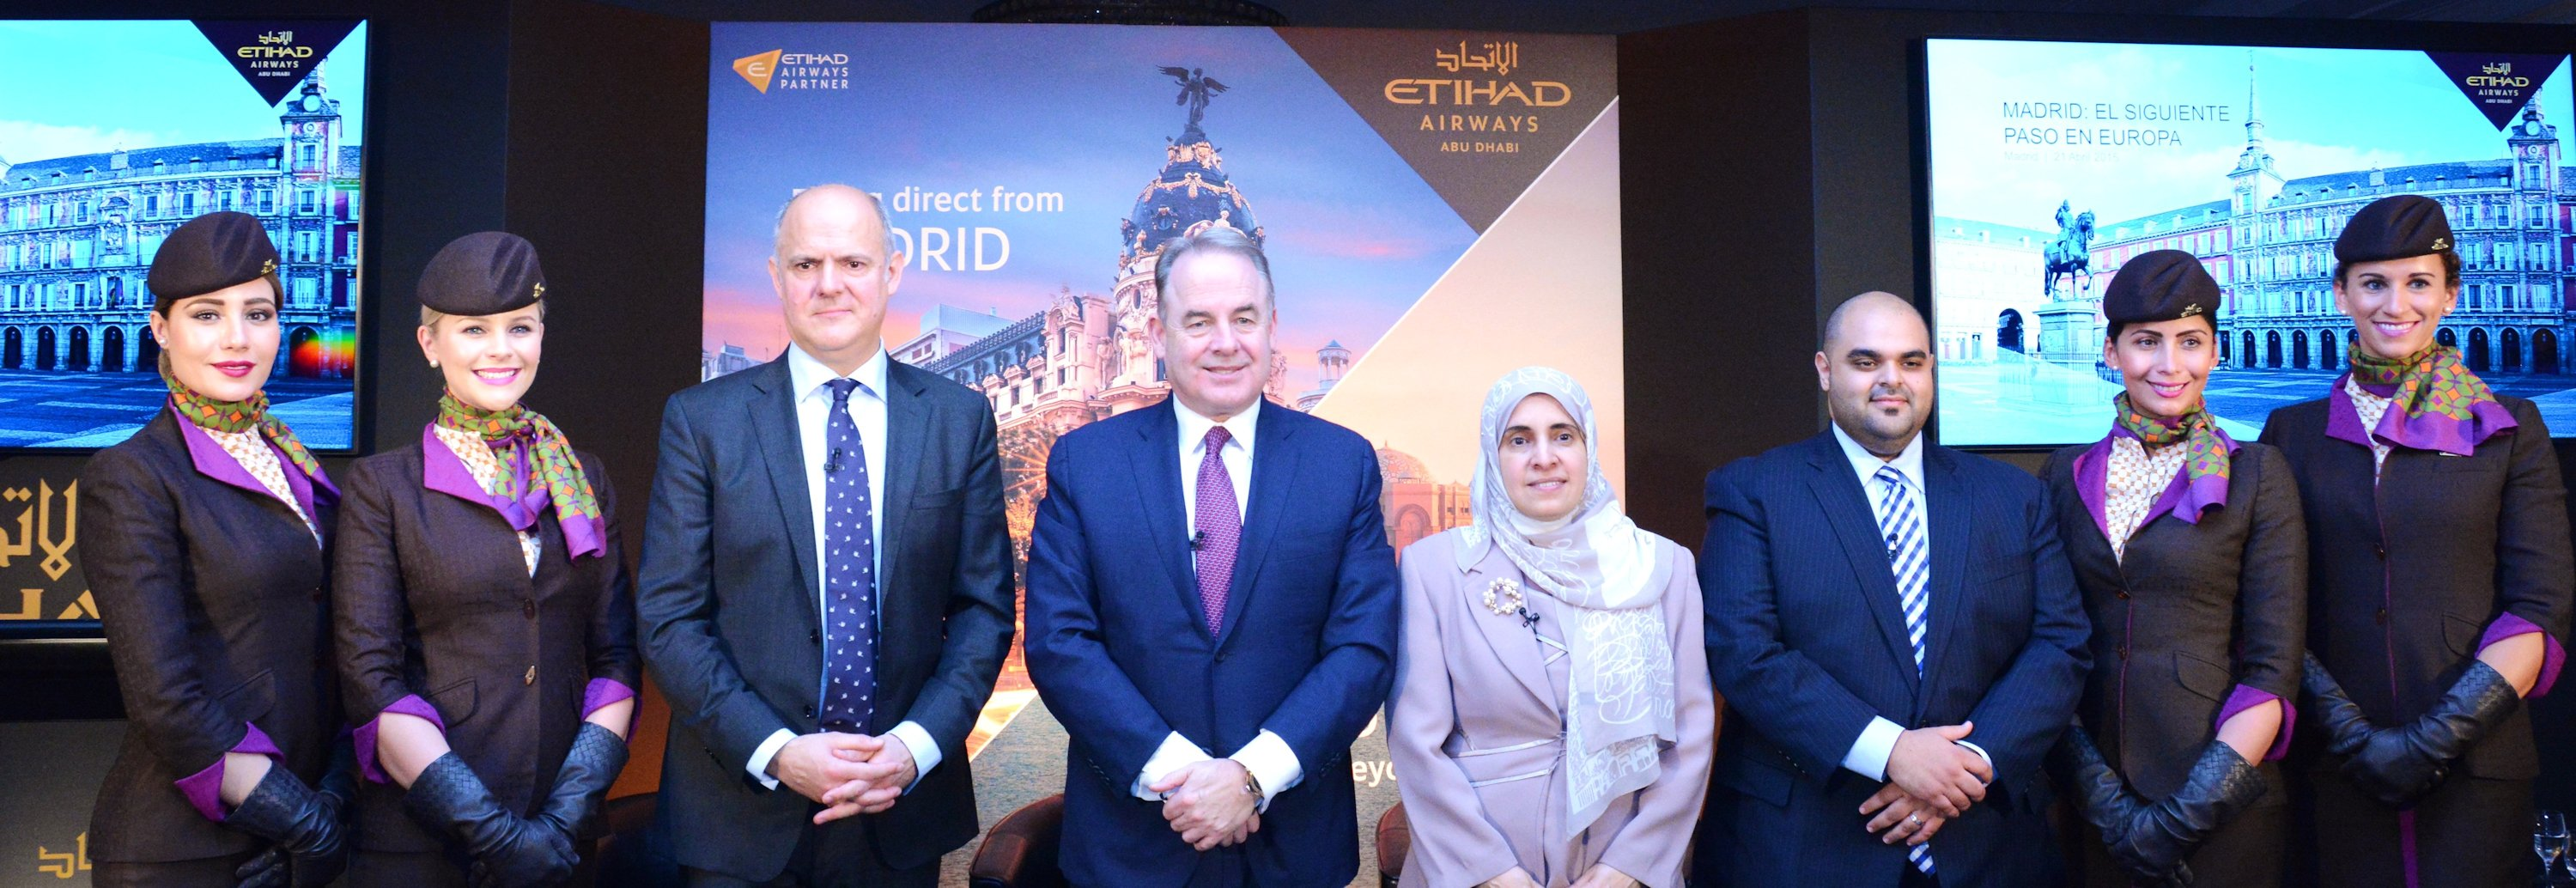 (left to right)Jordi Porcel, General Manager Spain, Etihad Airways; James Hogan,  President and Chief Executive Officer, Etihad Airways; Her Excellency Dr Hissa Abdulla  Ahmed Al-Otaiba, UAE Ambassador to the Kingdom of Spain; and Haitham Al Subaihi,  Vice President UAE Sales, Etihad Airways; at the airline's media conference in Madrid  on 21 April 2015.<p><p id=